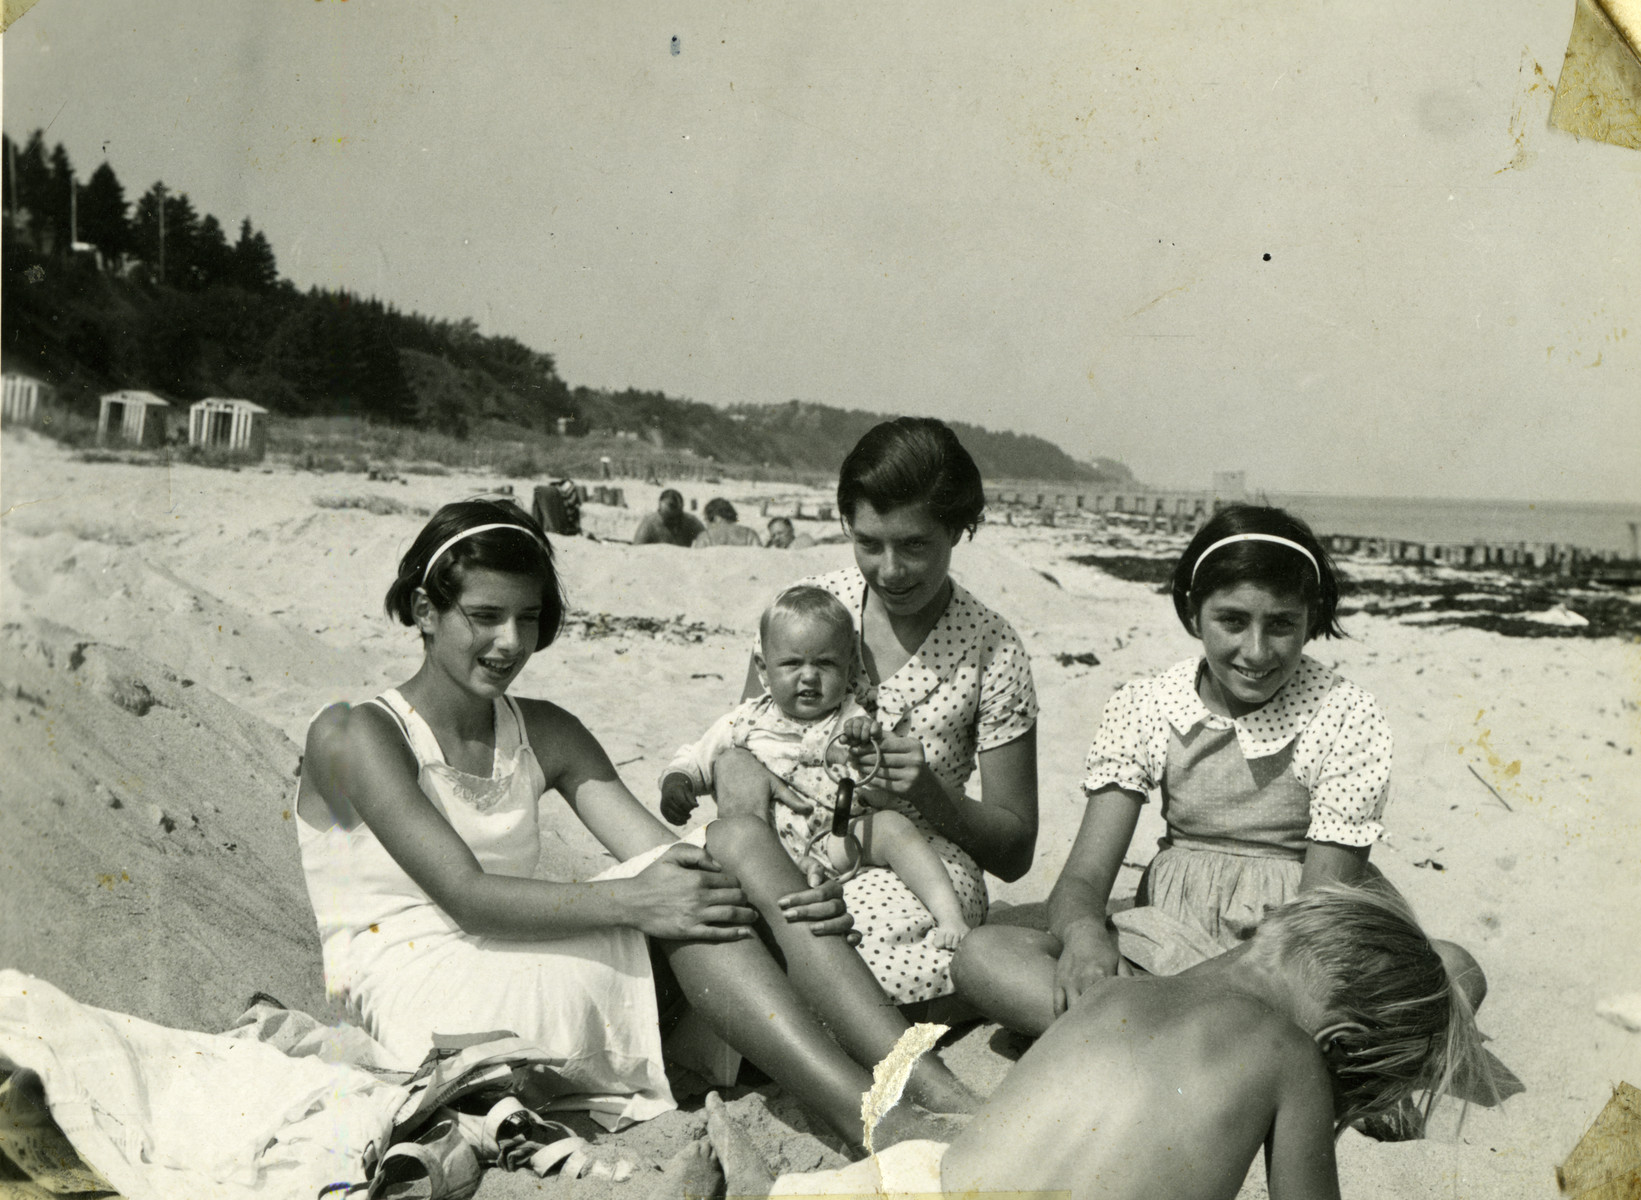 The Oestermann children relax on a beach.  Pictured from left to right are Margot, Else (holding the child of a friend), and Lilian.